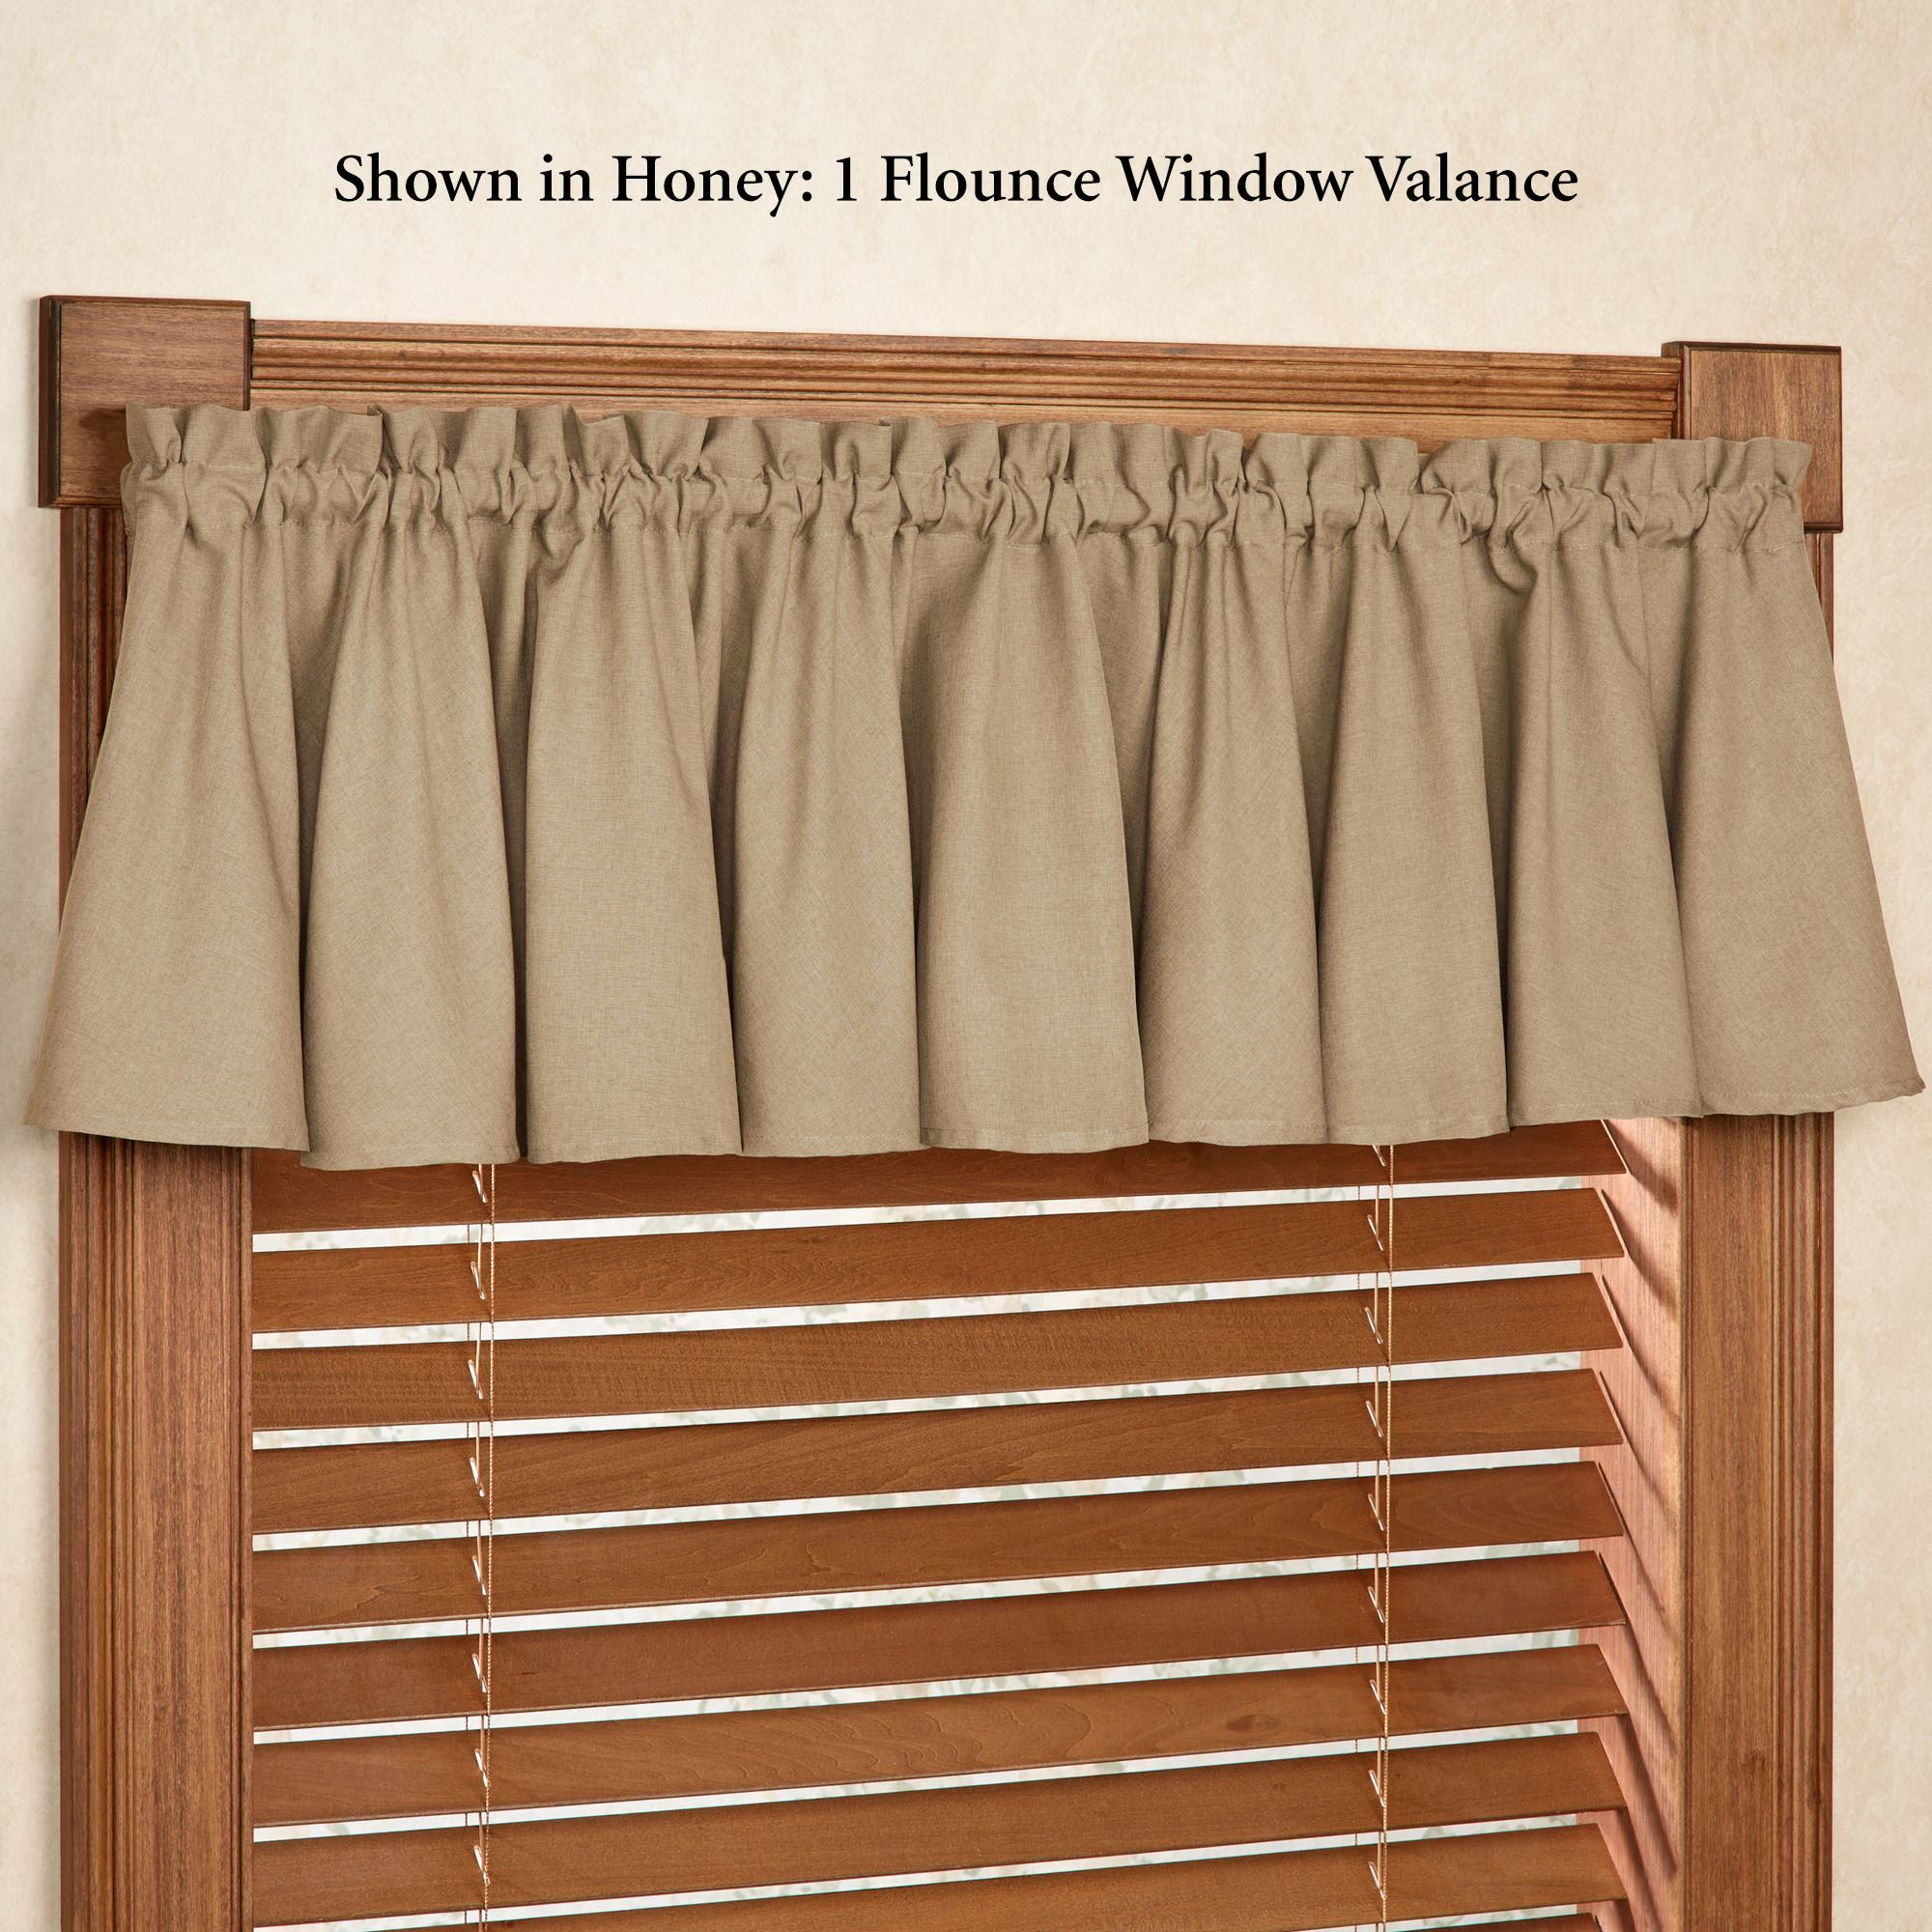 sheer valance treatments jcpenney window bath for design walmart kitchen windows bed valances catalogue curtain beyond simple wayfair t modern clearance curtains and